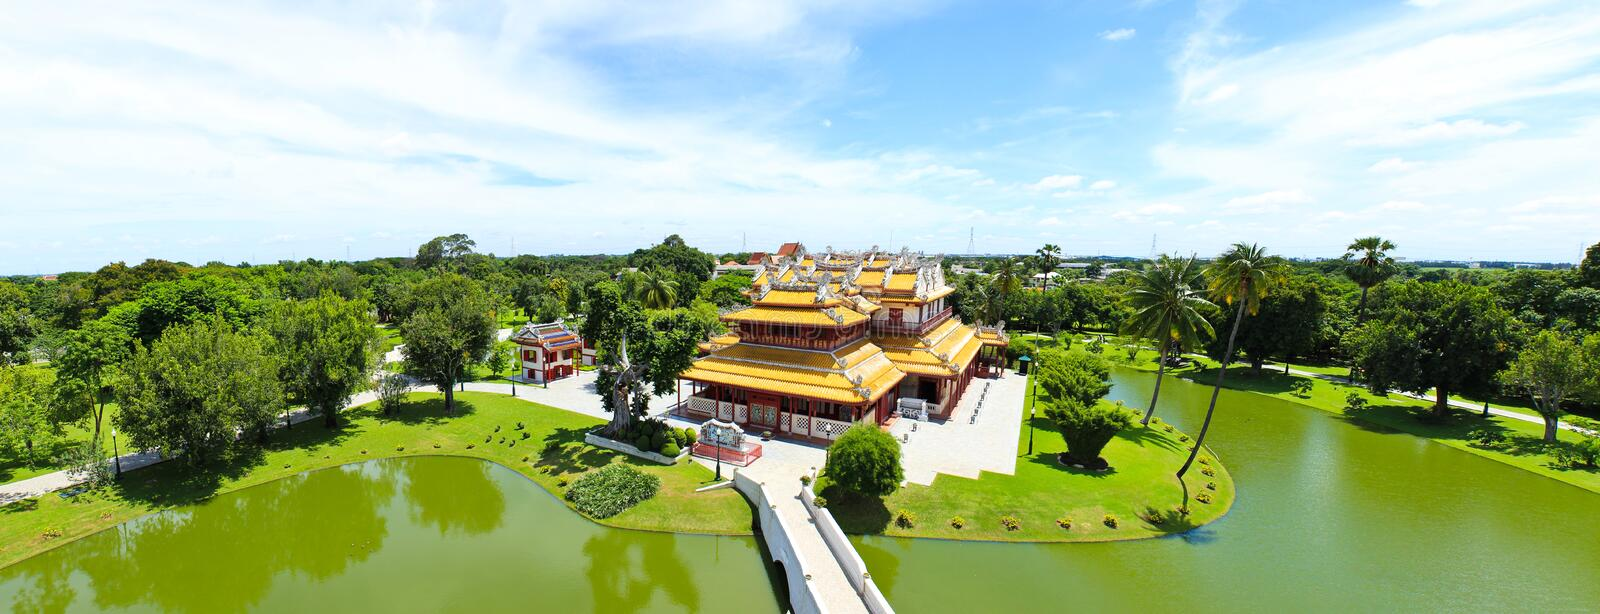 Download Thai Royal Residence At Bang Pa-In Royal Palace Stock Image - Image: 32383241